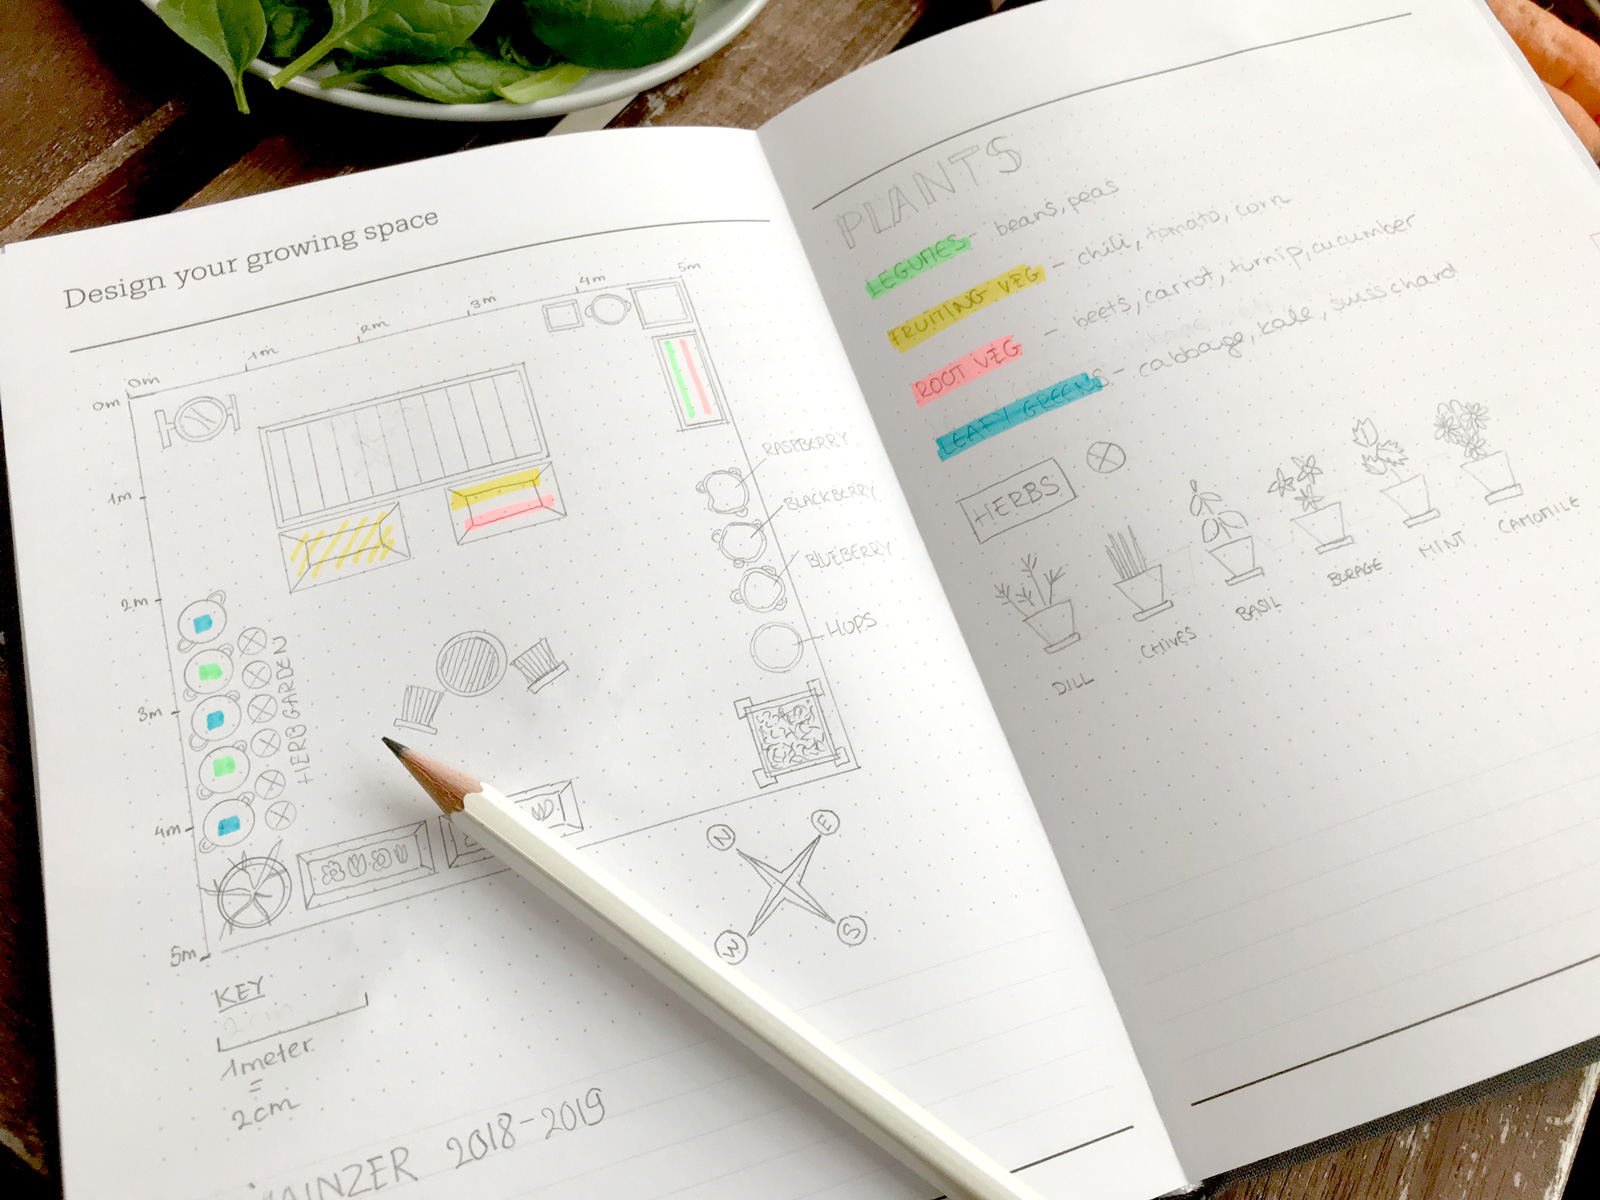 journal with drawing of the growing space to find out which is the best pot for plants